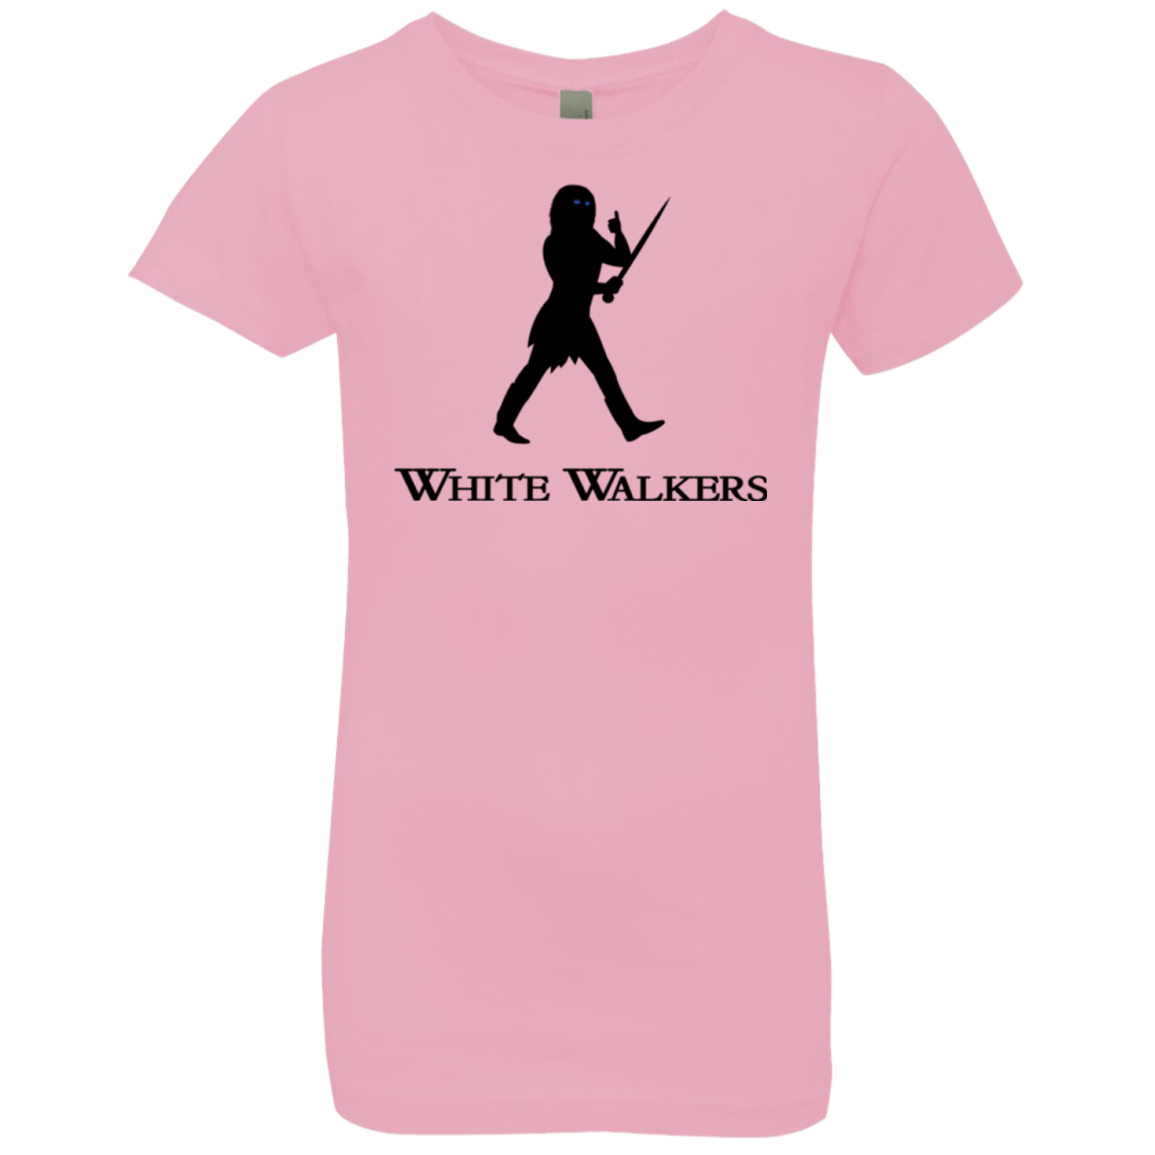 T-Shirts Light Pink / YXS White walkers Girls Premium T-Shirt